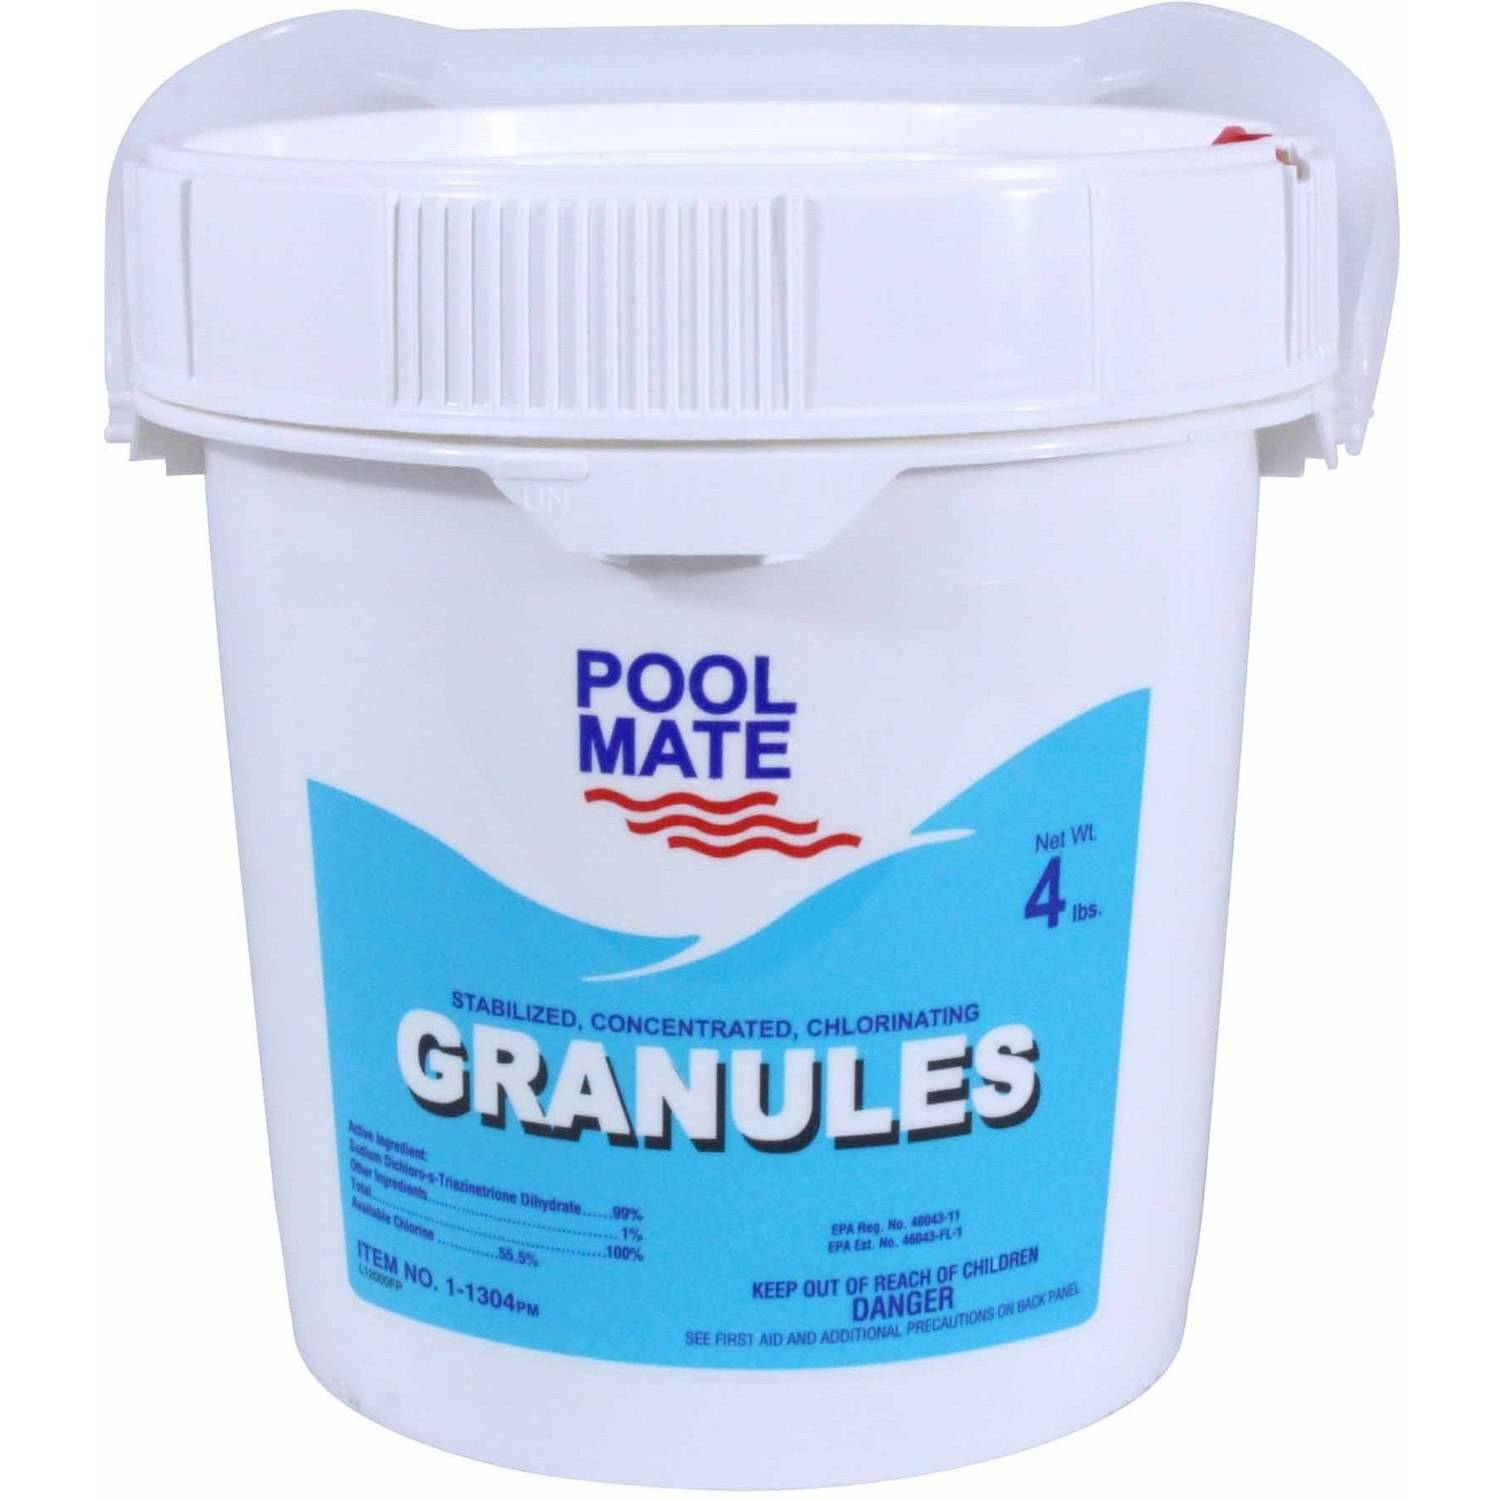 Pool Mate Stabilized/Concentrated/Chlorinating Granules for Swimming Pools